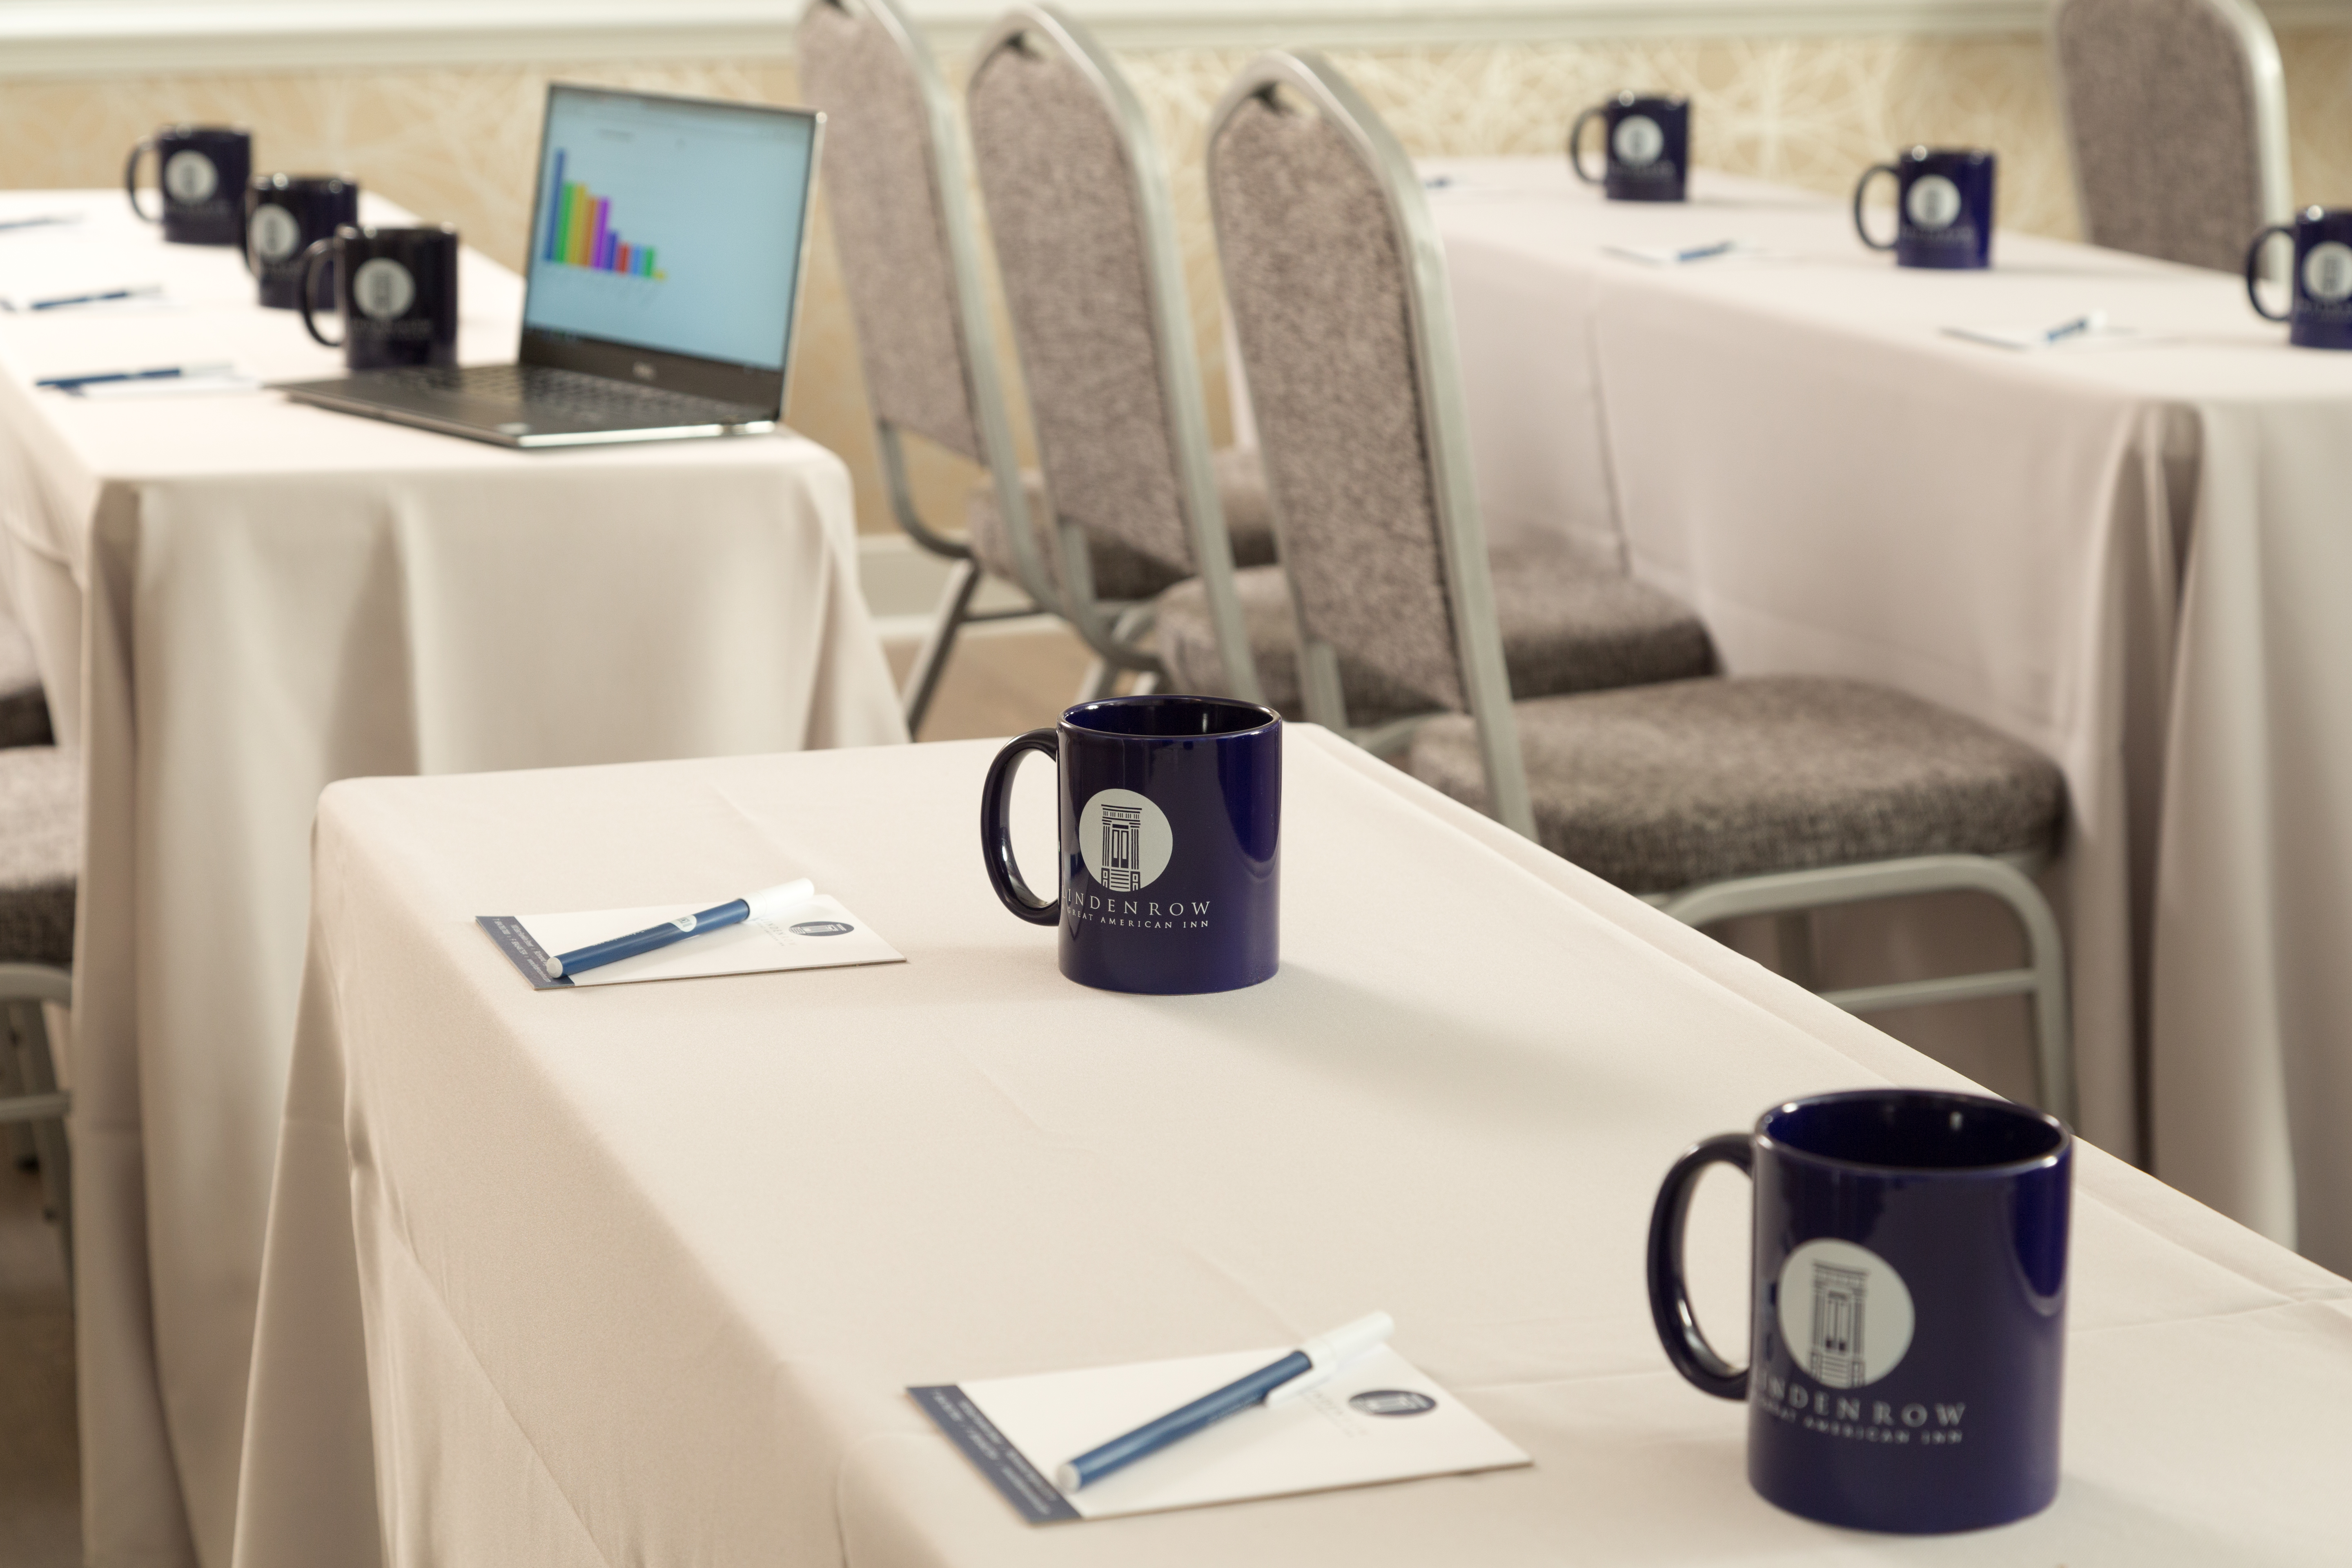 Board room with Linden Row mugs